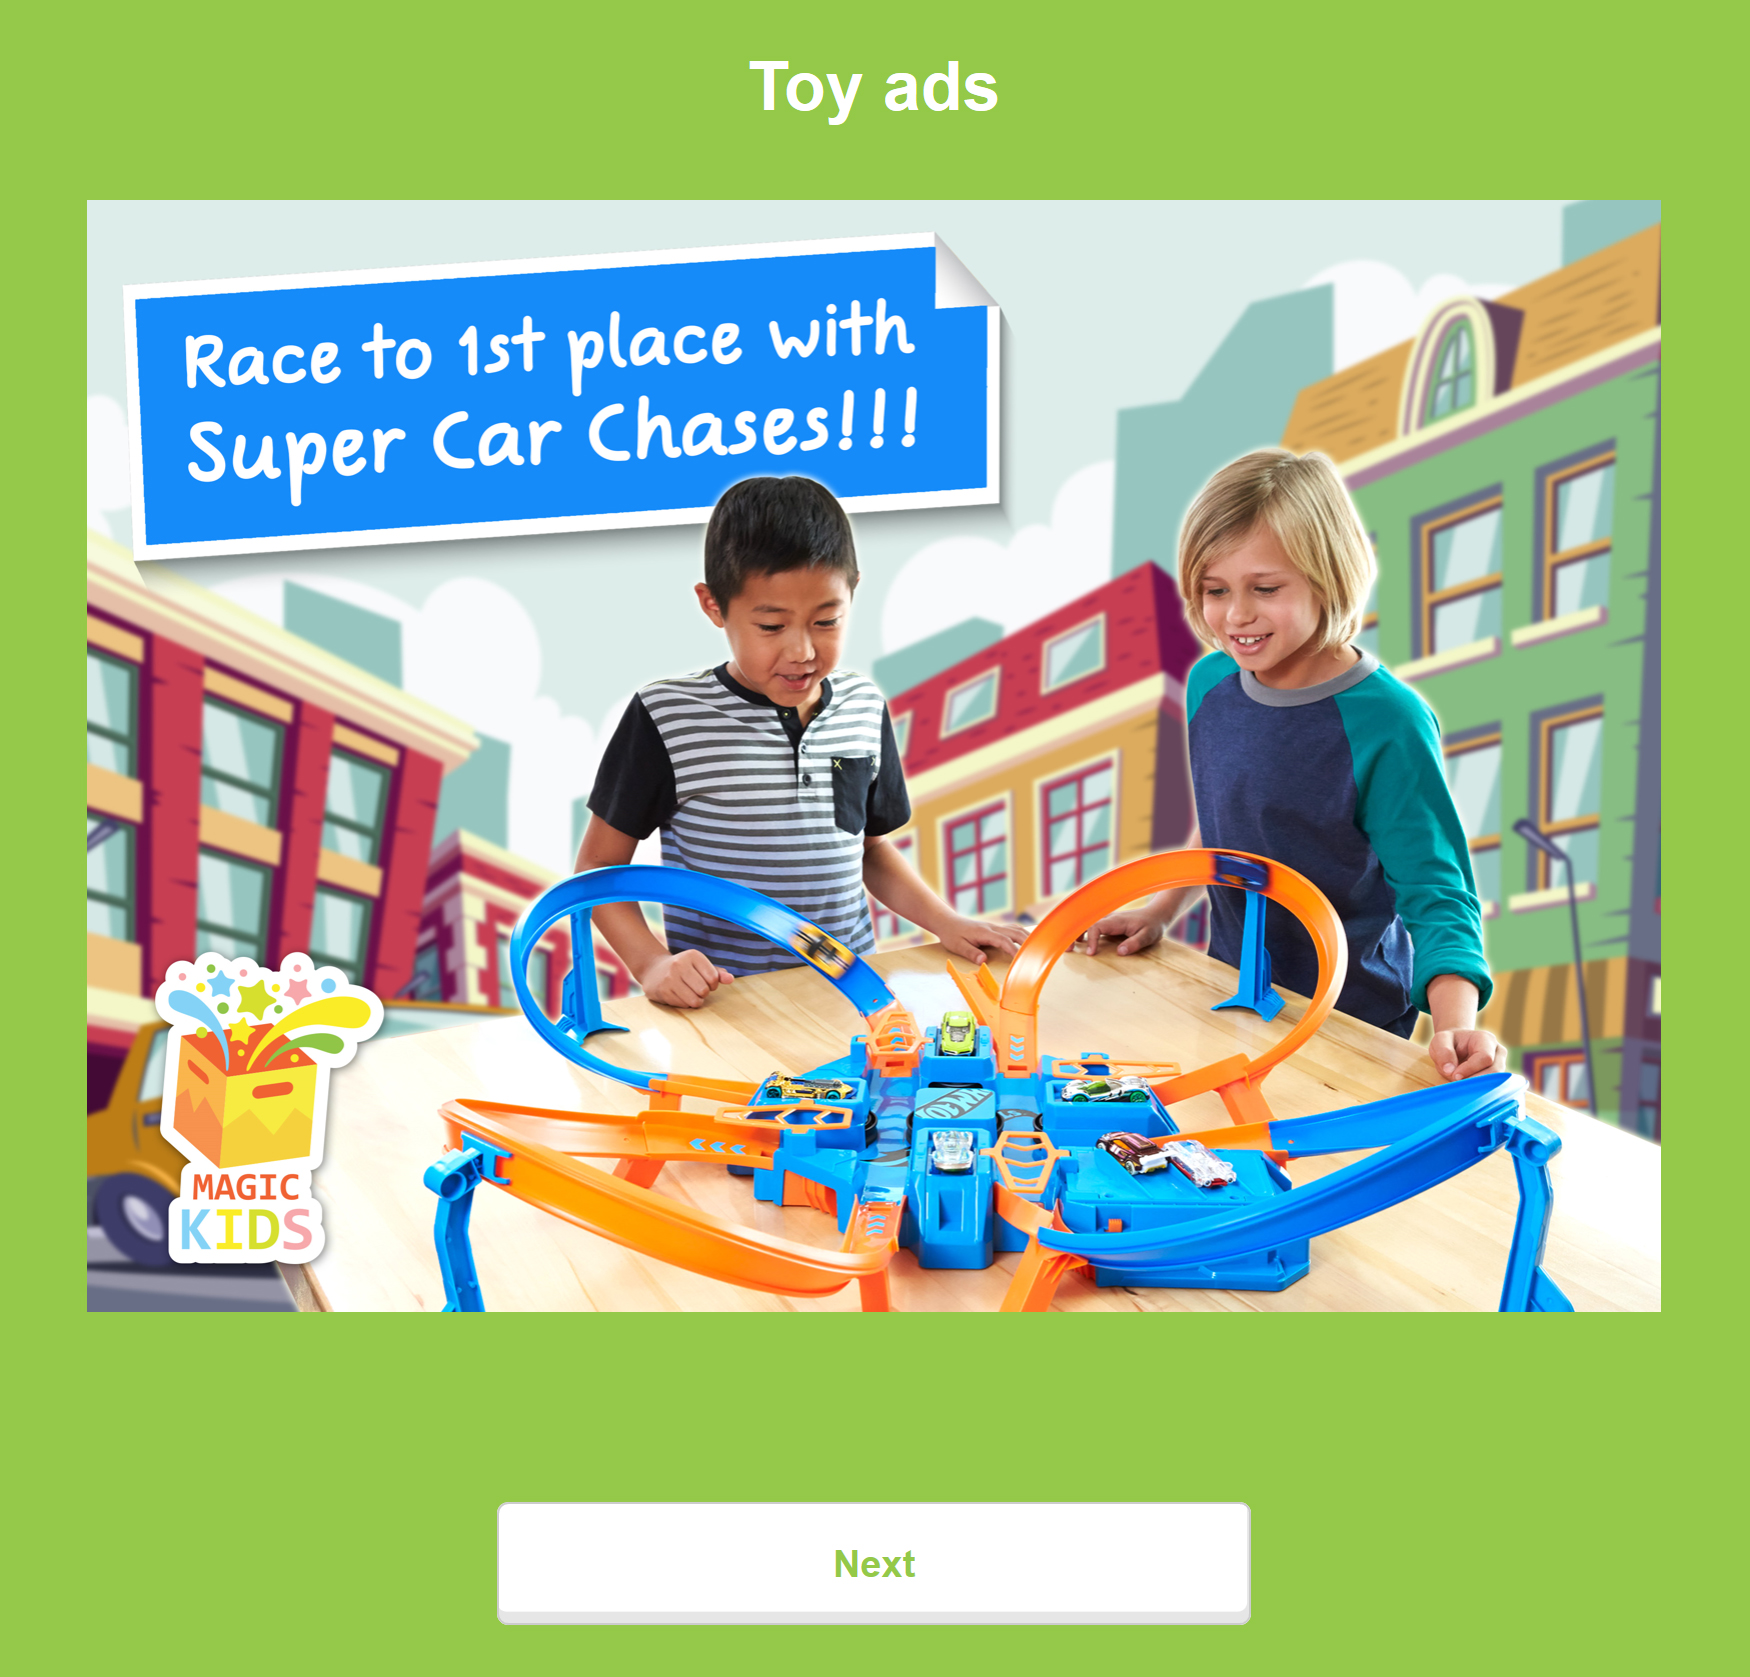 Toy ads quiz link